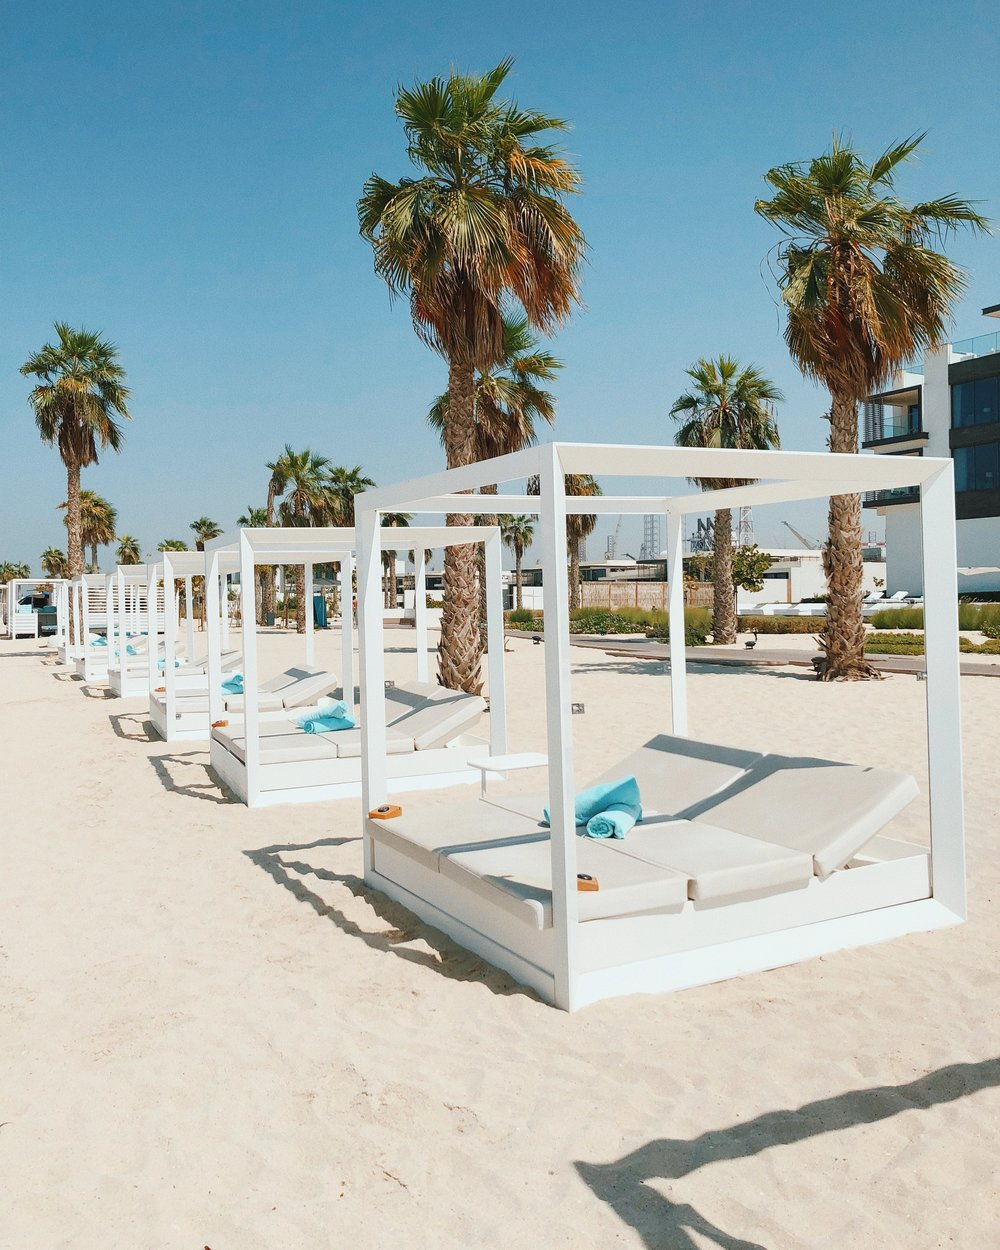 Nikki Beach Resort and Spa // Best resorts in Dubai // Best hotels in Dubai // Where to stay in Dubai // Travel Blog // The Style Sauce